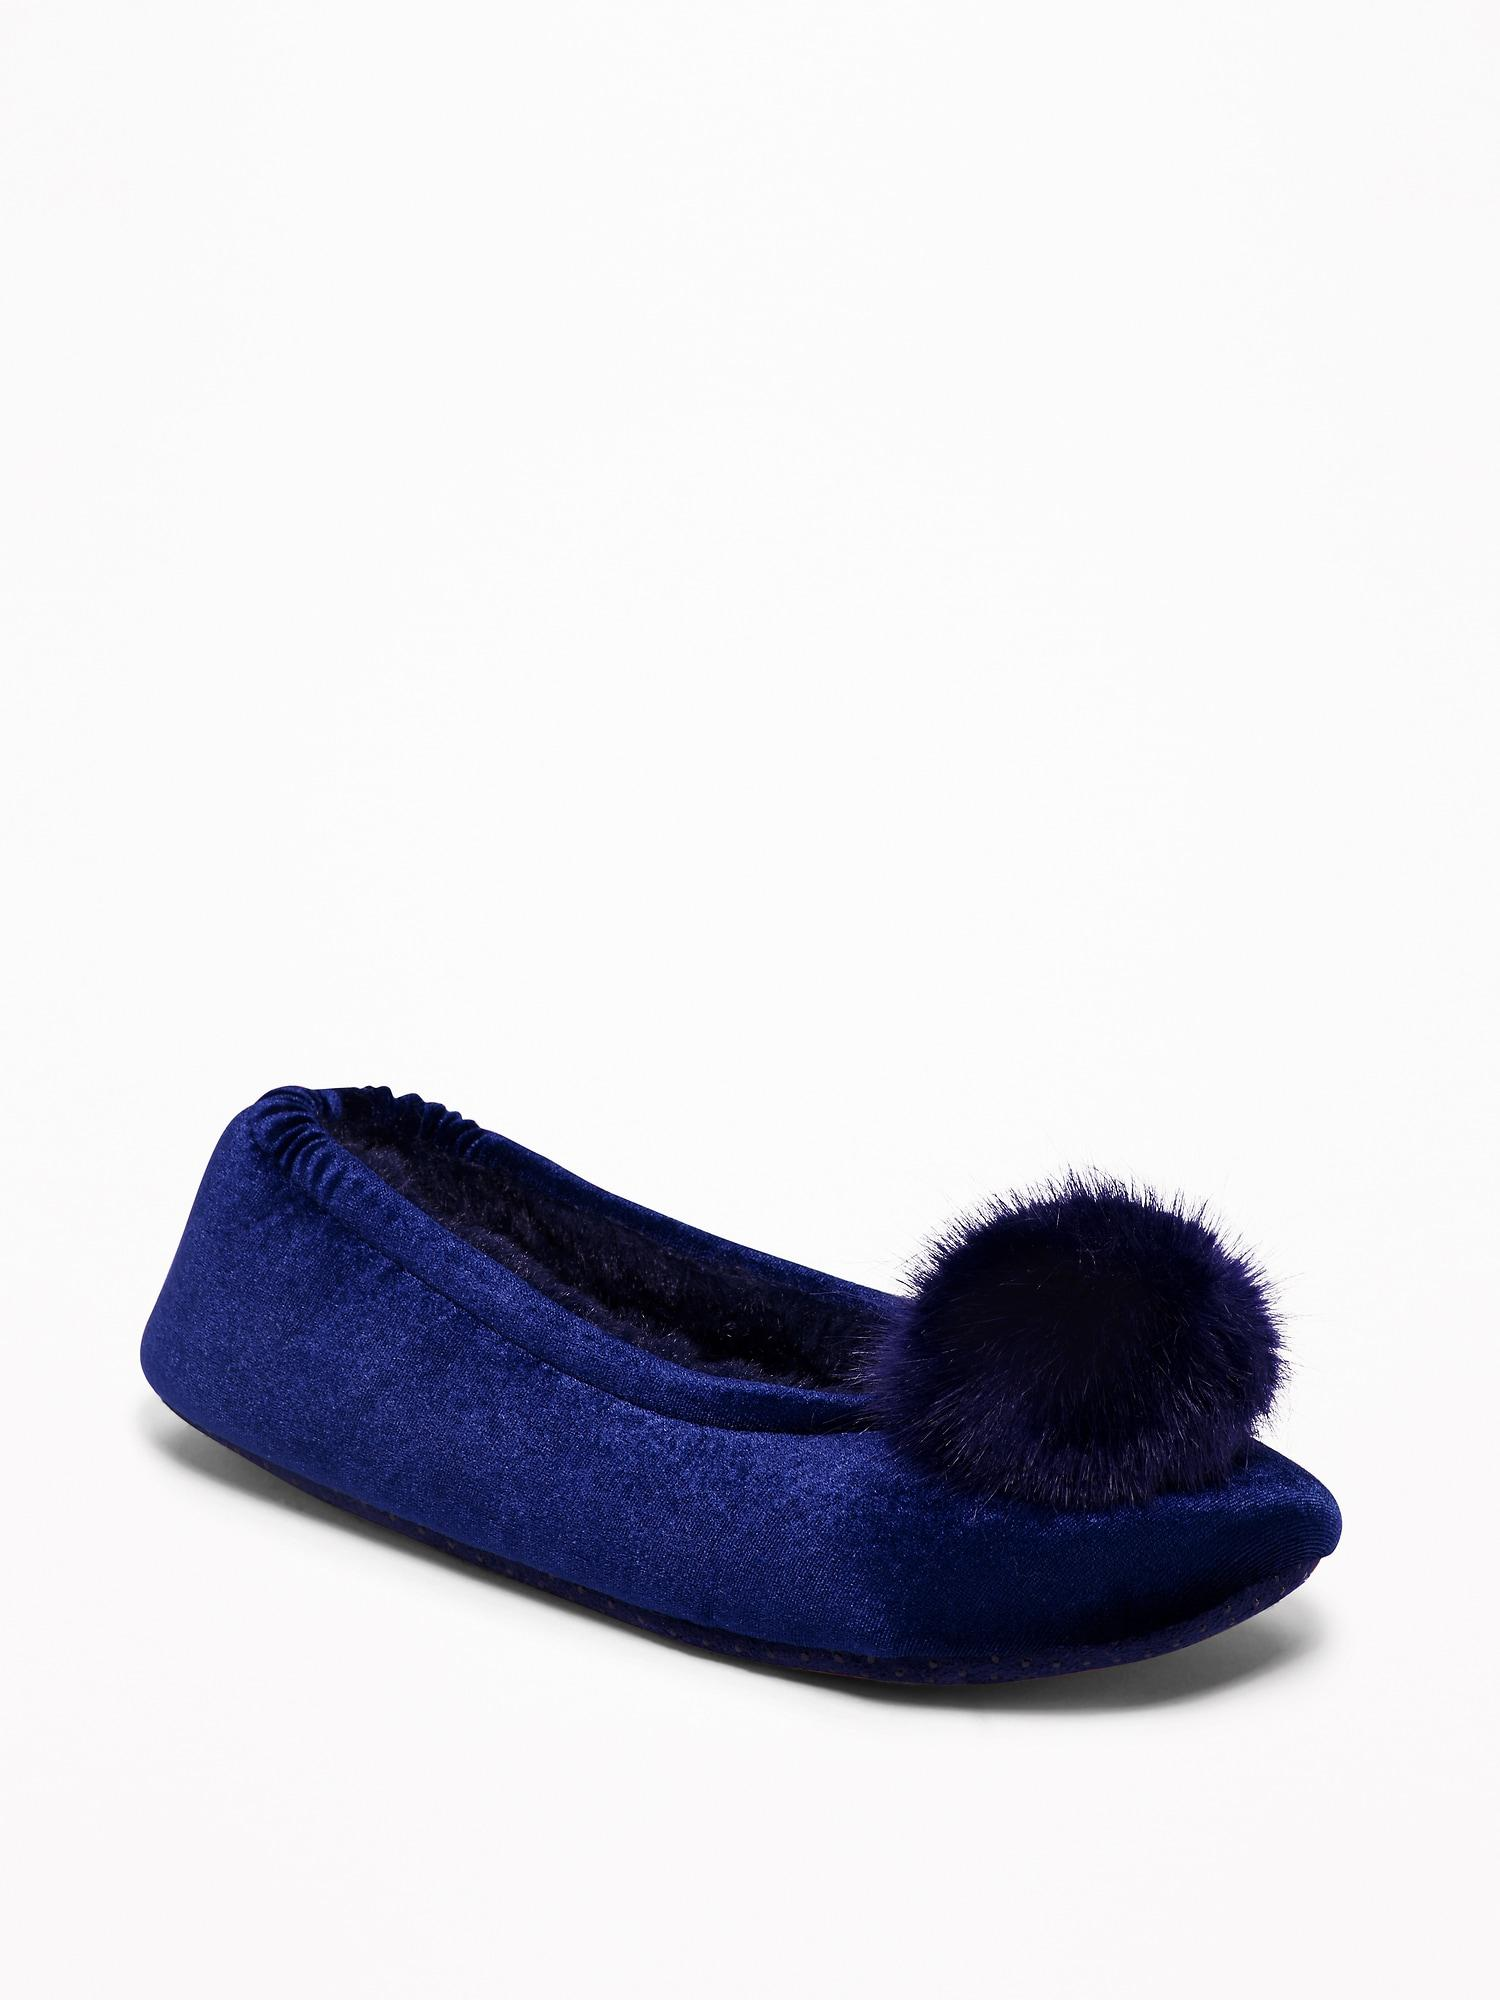 907d87ac4d6 Gallery. Previously sold at  Old Navy · Women s Pom Pom Shoes ...